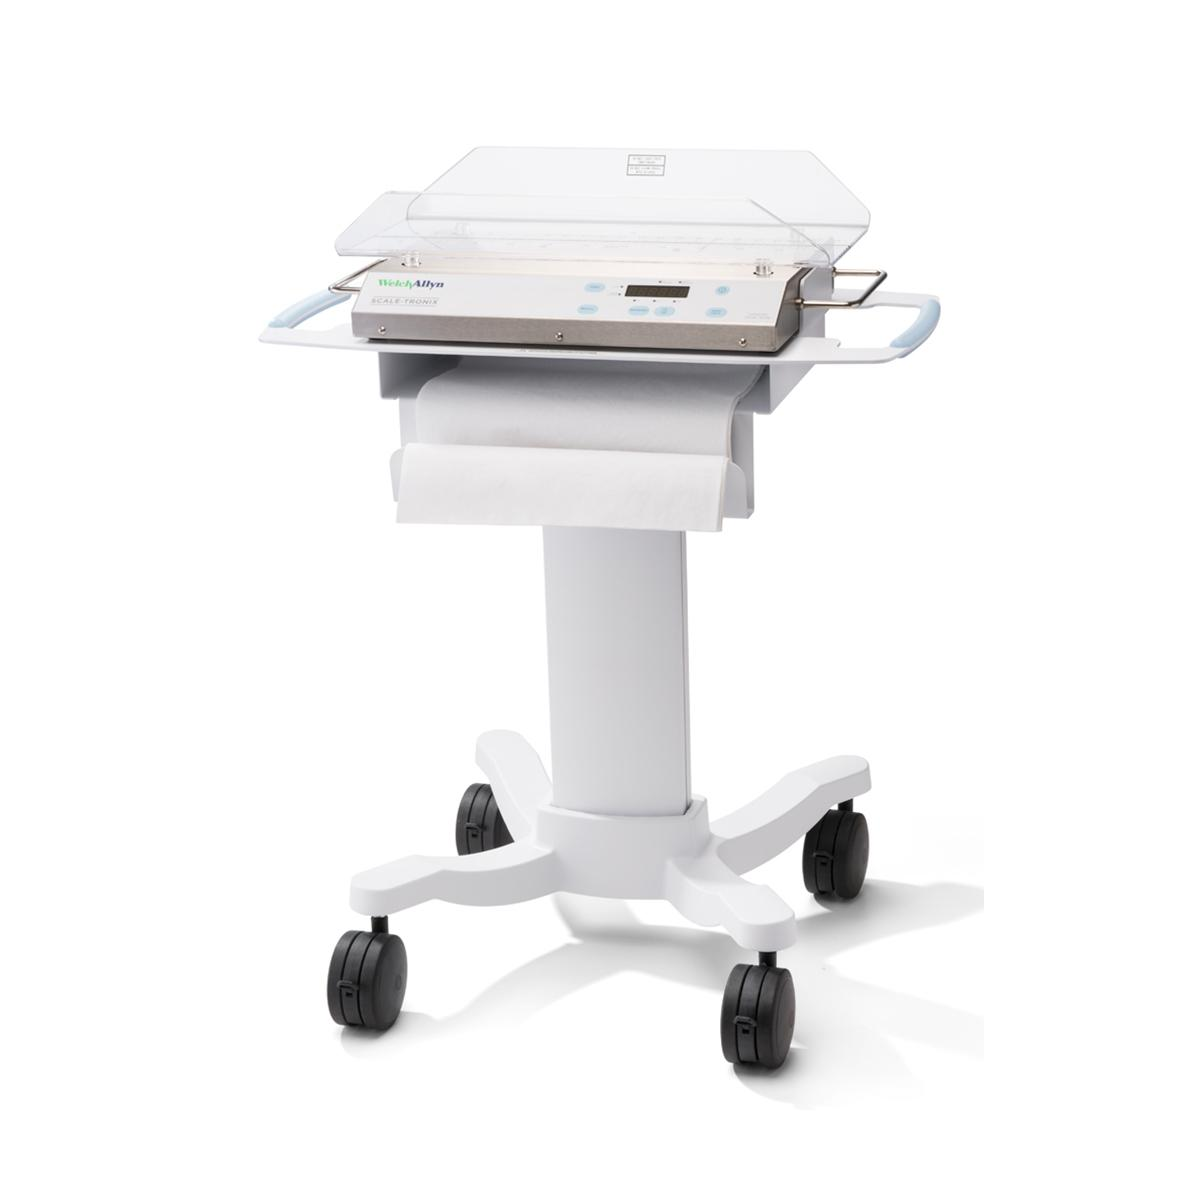 Scale-Tronix Pediatric/Infant Scale with standard cradle on mobile stand